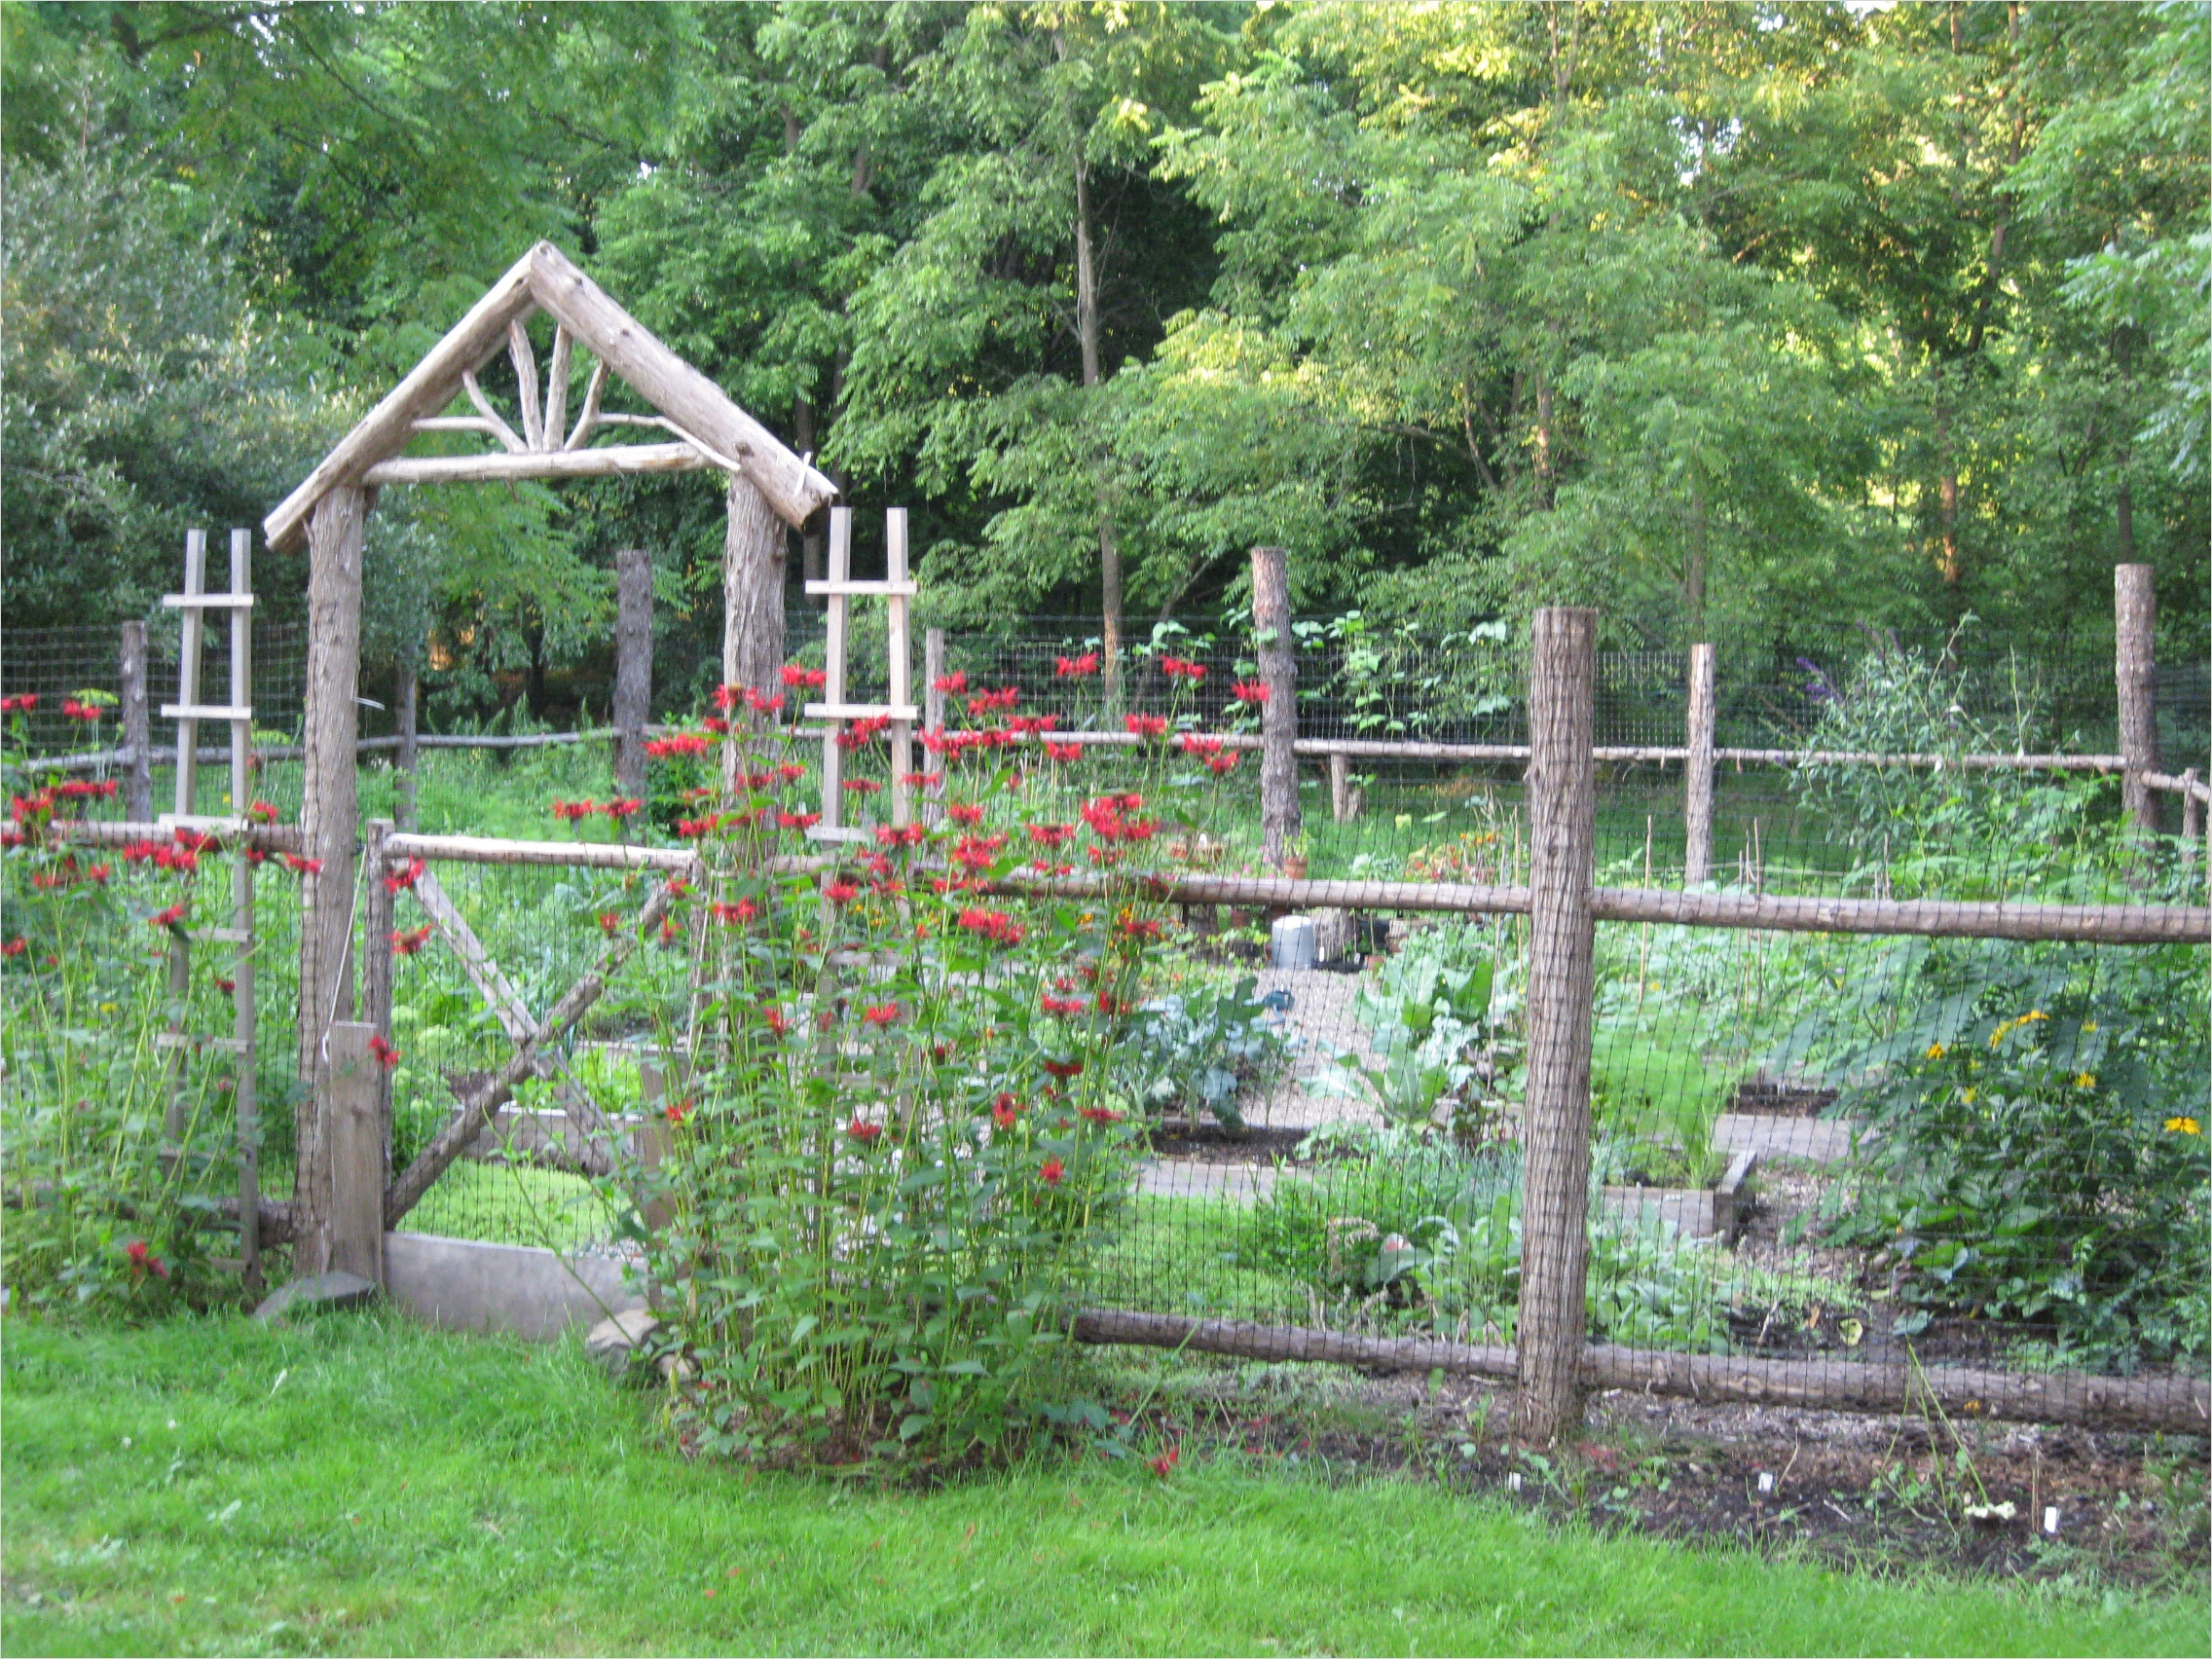 Vegetable Garden Designs 72 Backyard Ve Able Garden House Design with Diy Recycle Wooden Fence Wire Trellis and Simple 1